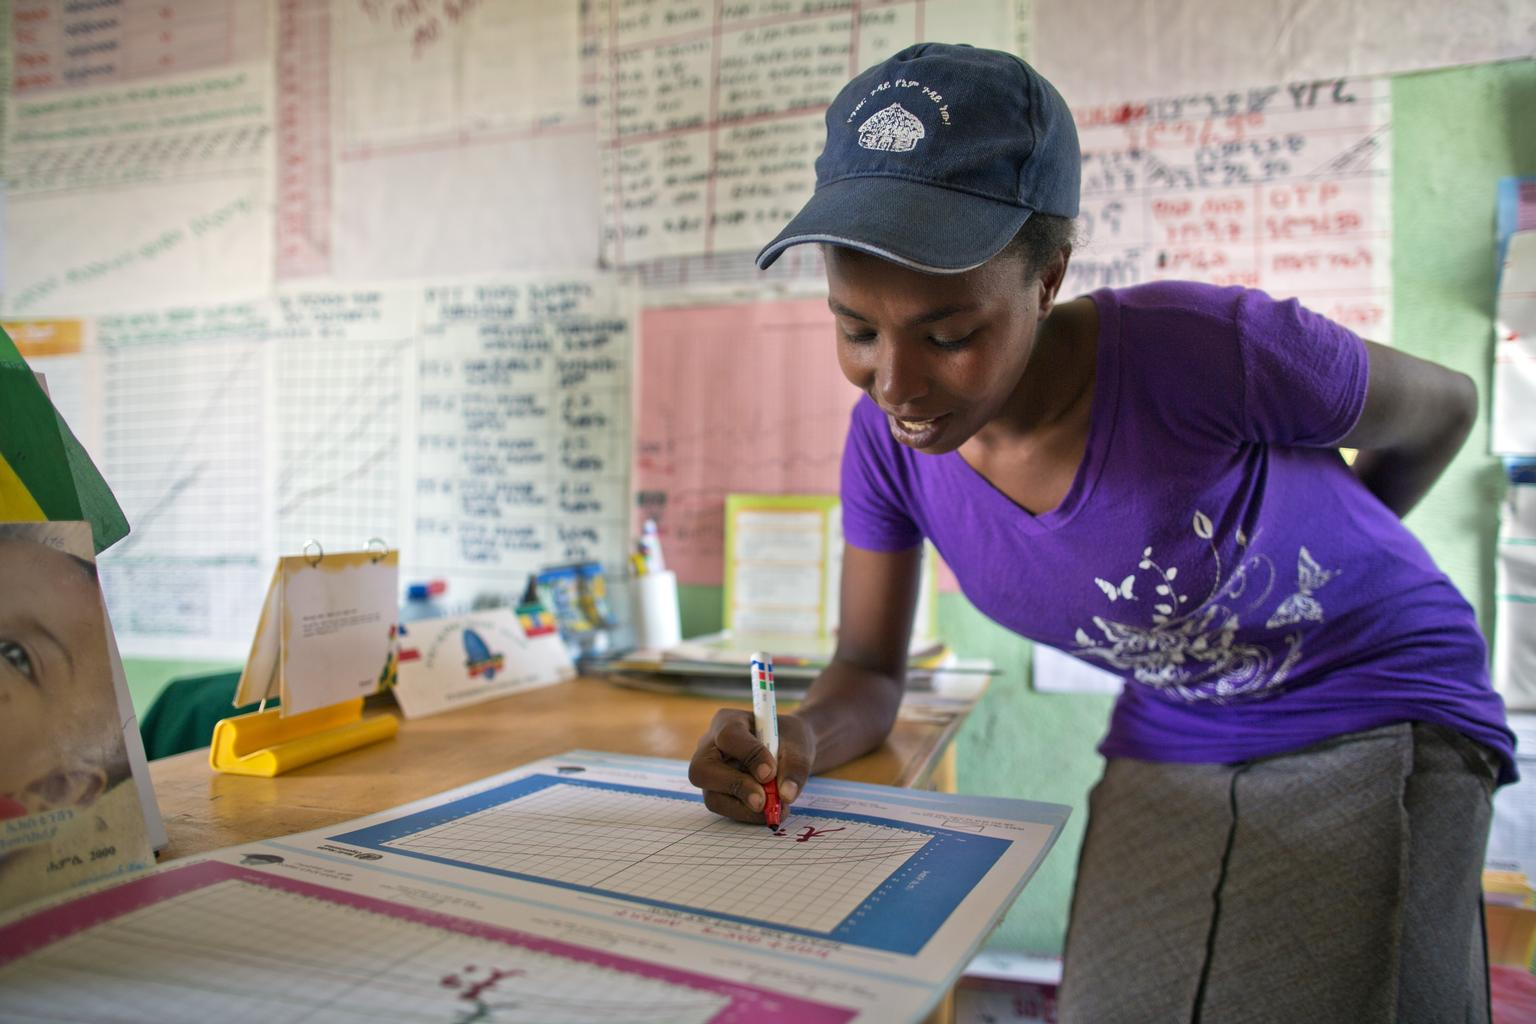 Salemwoit Negase, a Health Extension Worker, updates a chart at Galeto Health Post in SNNPR State of Ethiopia on April 2, 2013. Photo by Jiro Ose.